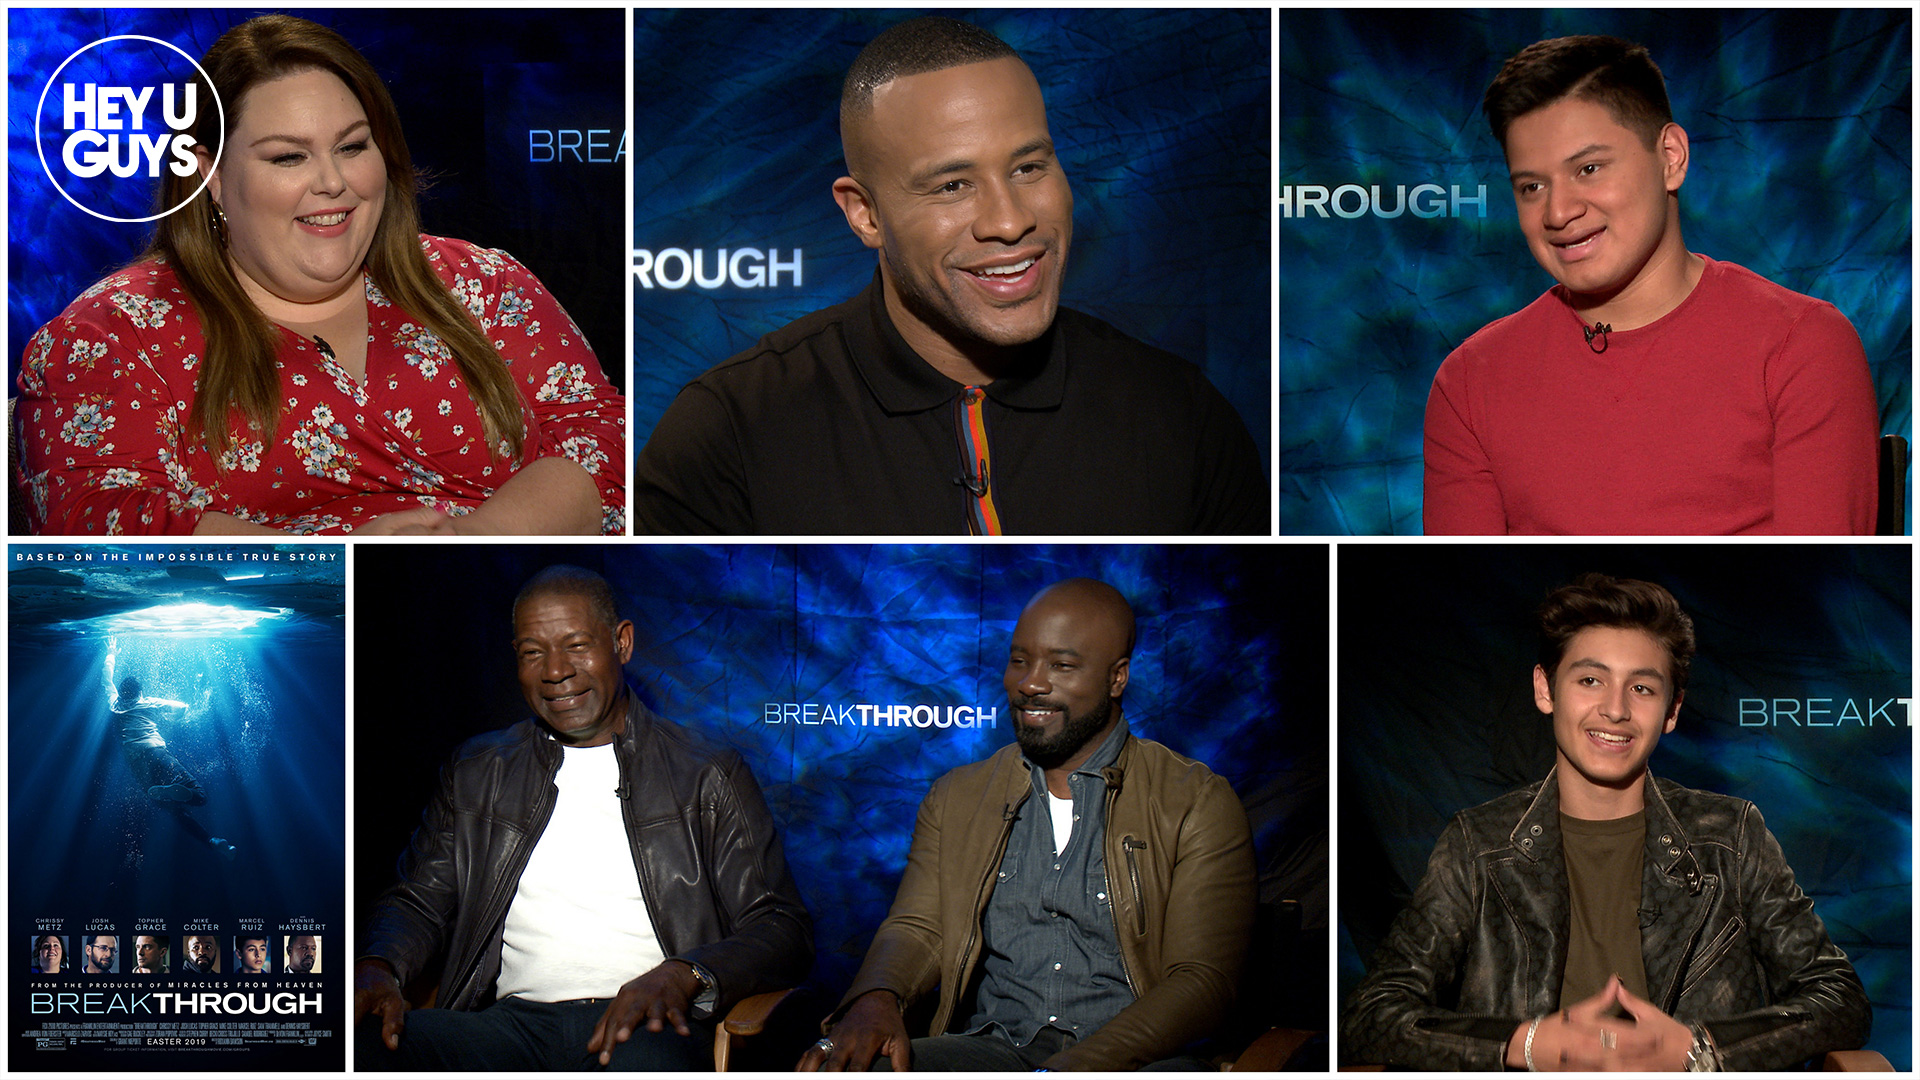 breakthrough cast interviews